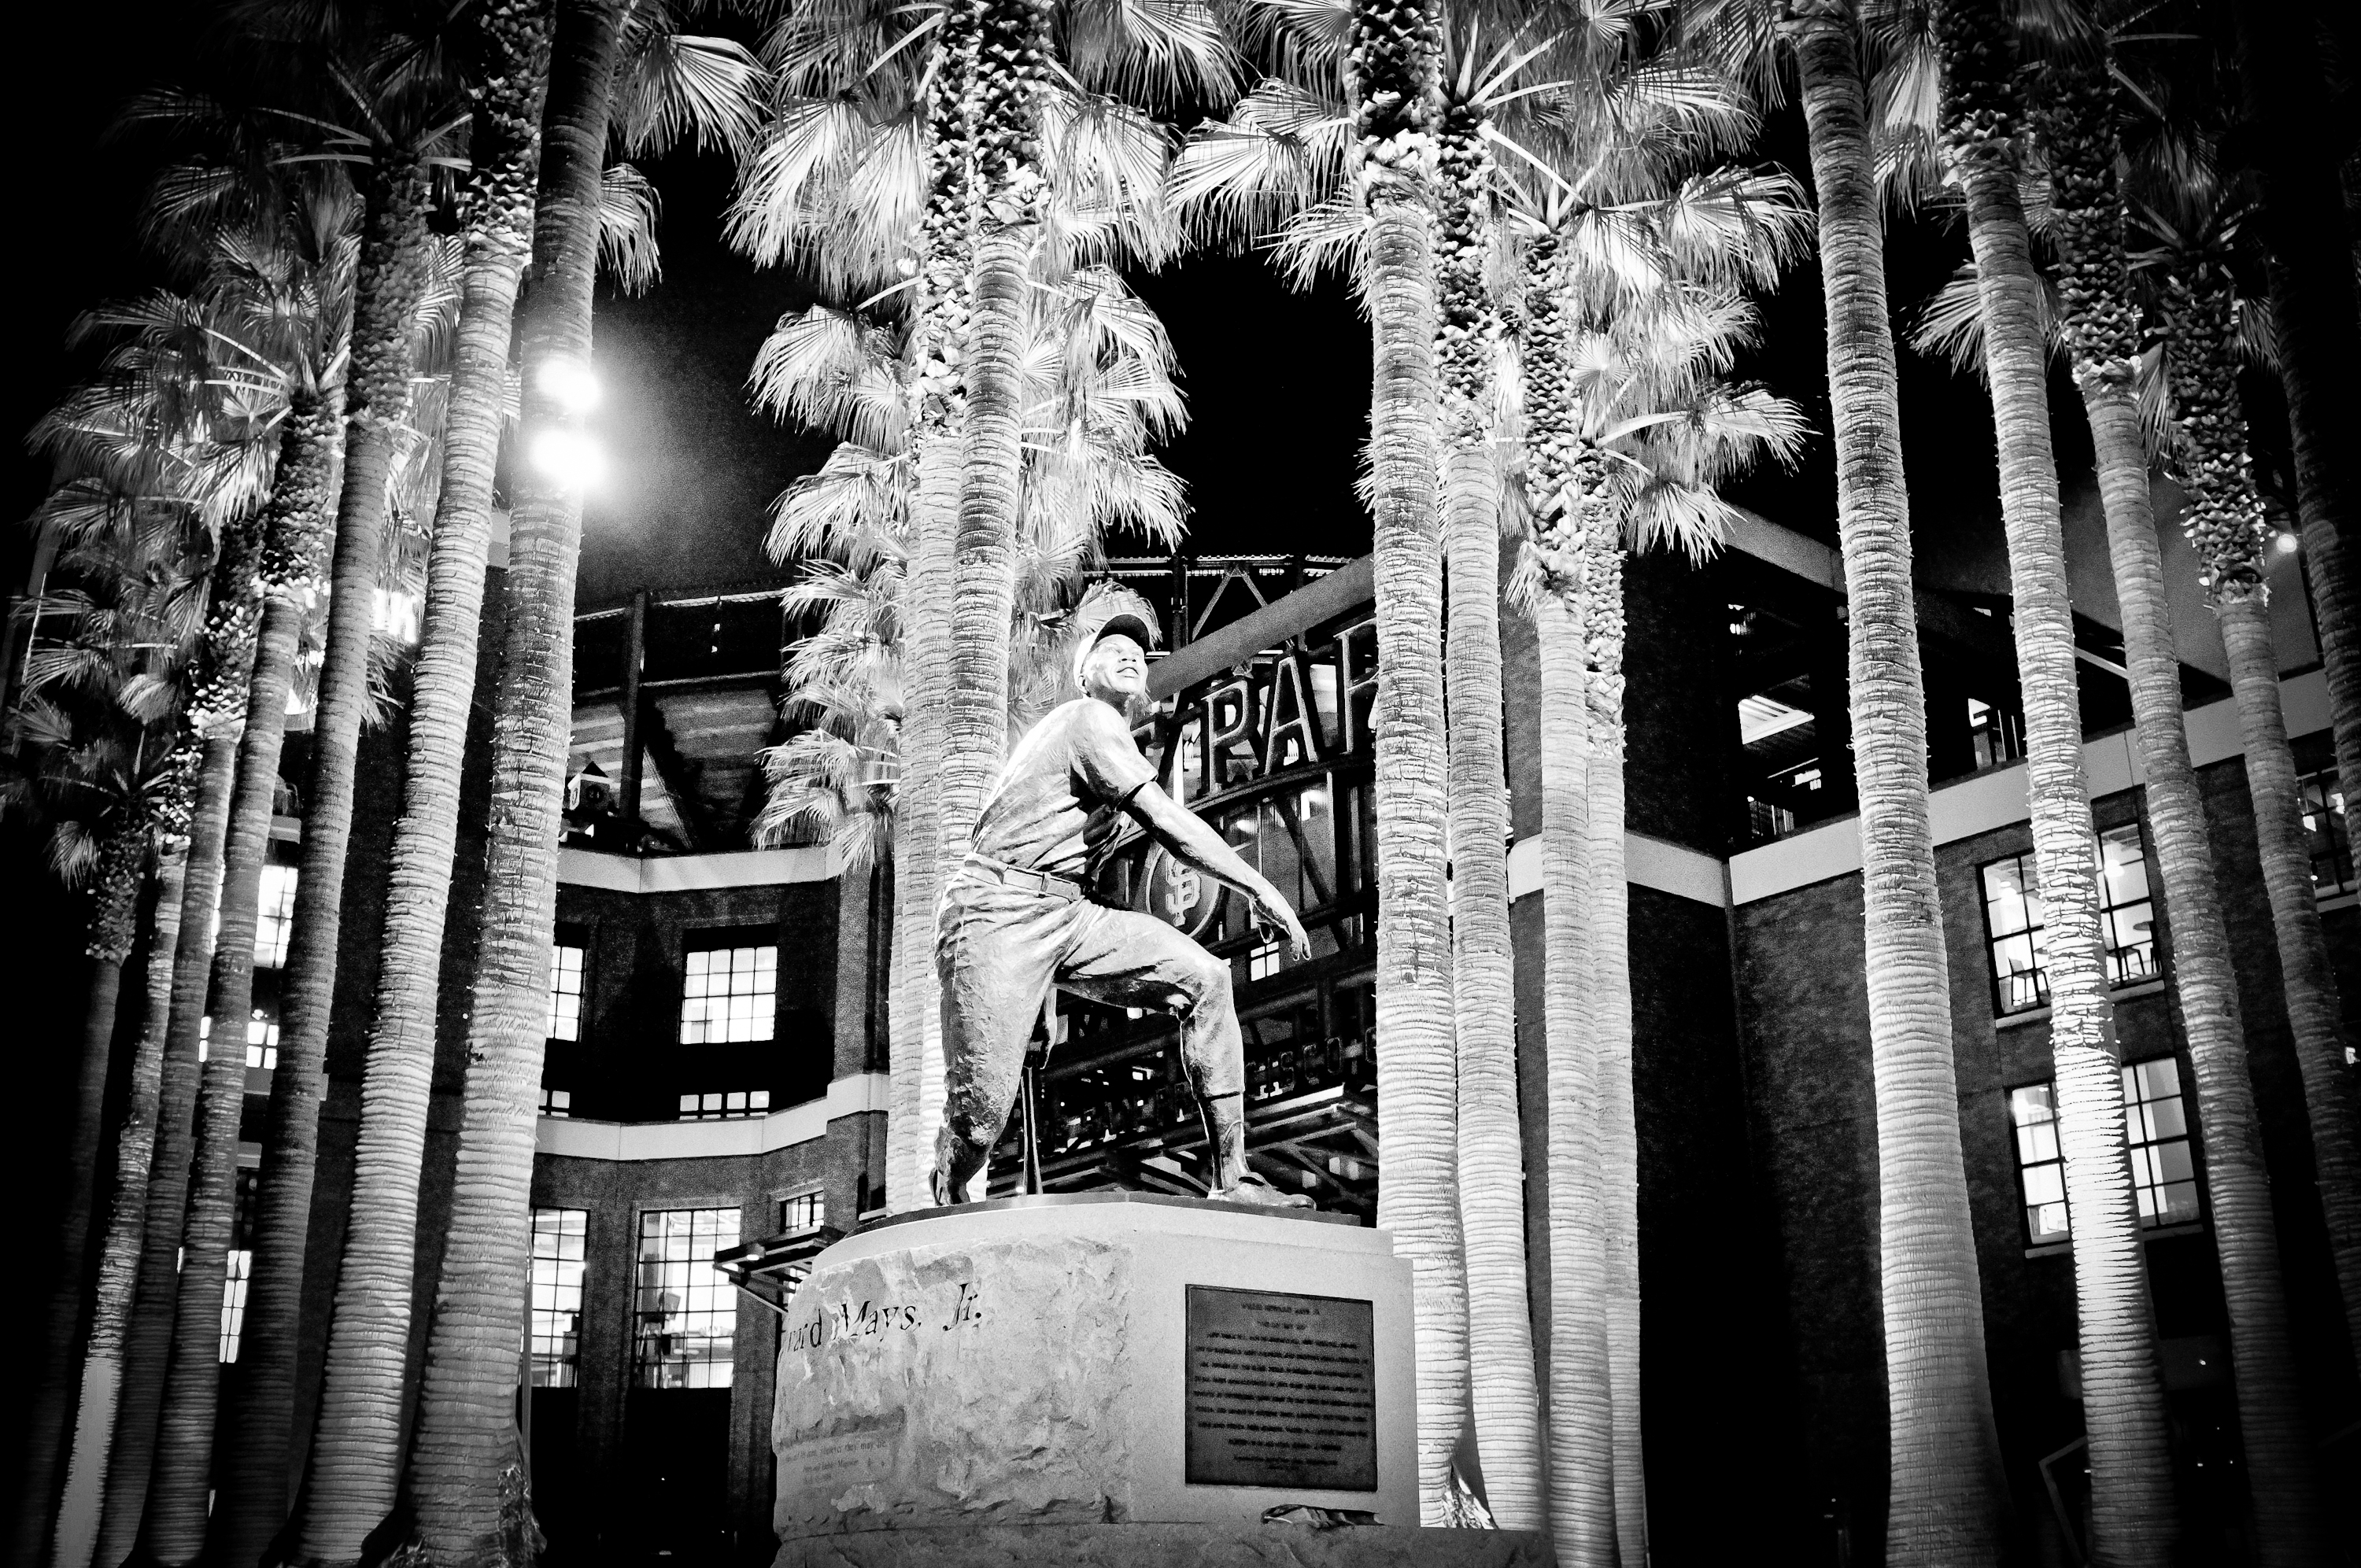 Photo: Willie Mays Plaza Fuji X100 ISO 5000 f/2.8